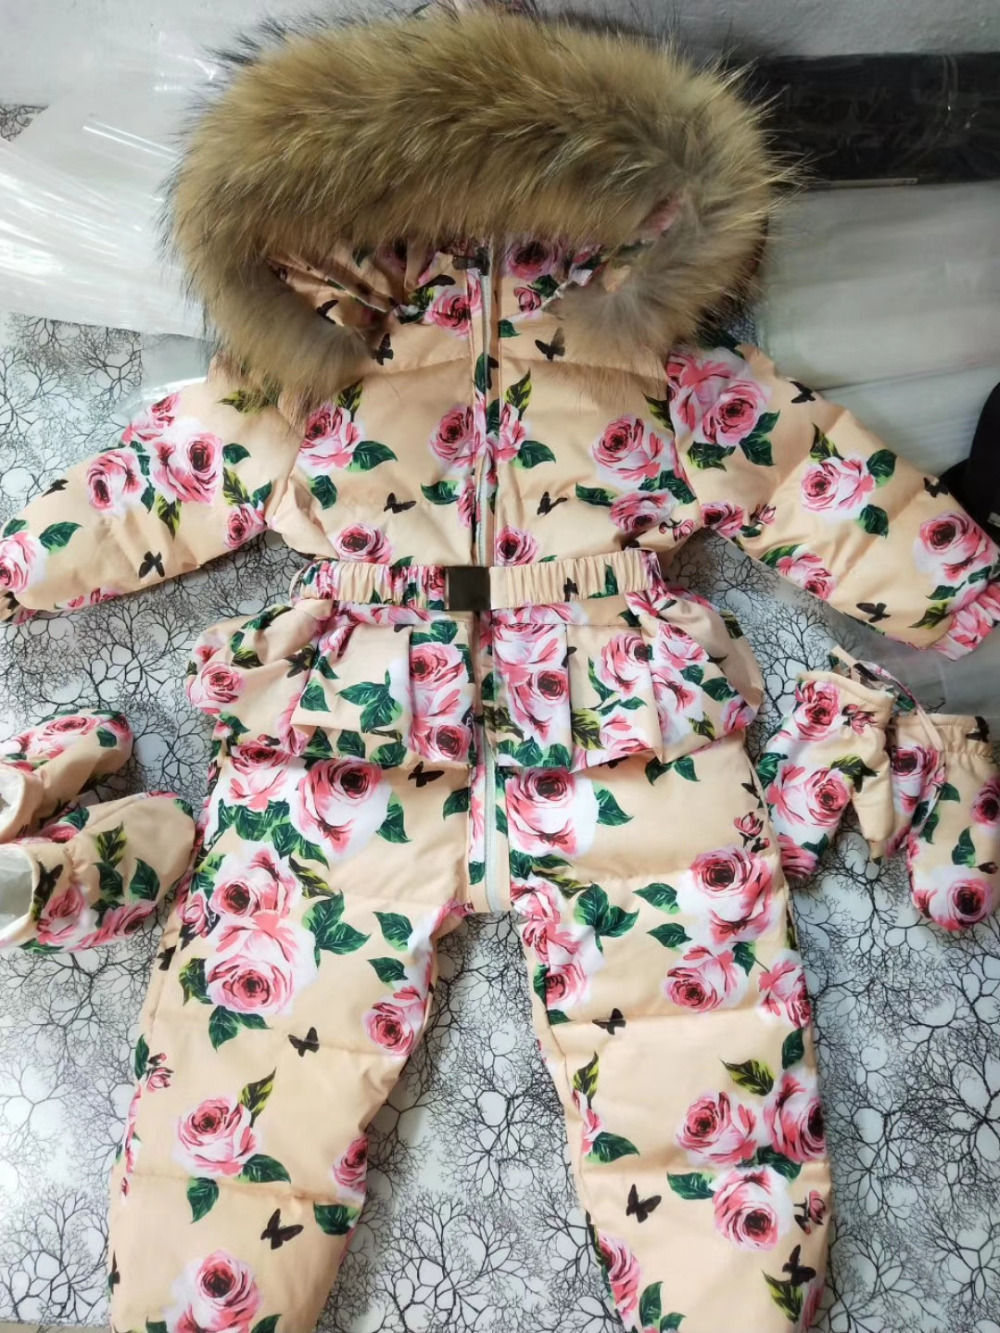 2018 Winter baby down coat Baby duck down suit outerwear Fur Hooded childrens Snowsuit down coats Child jumpsuit romper ski2018 Winter baby down coat Baby duck down suit outerwear Fur Hooded childrens Snowsuit down coats Child jumpsuit romper ski